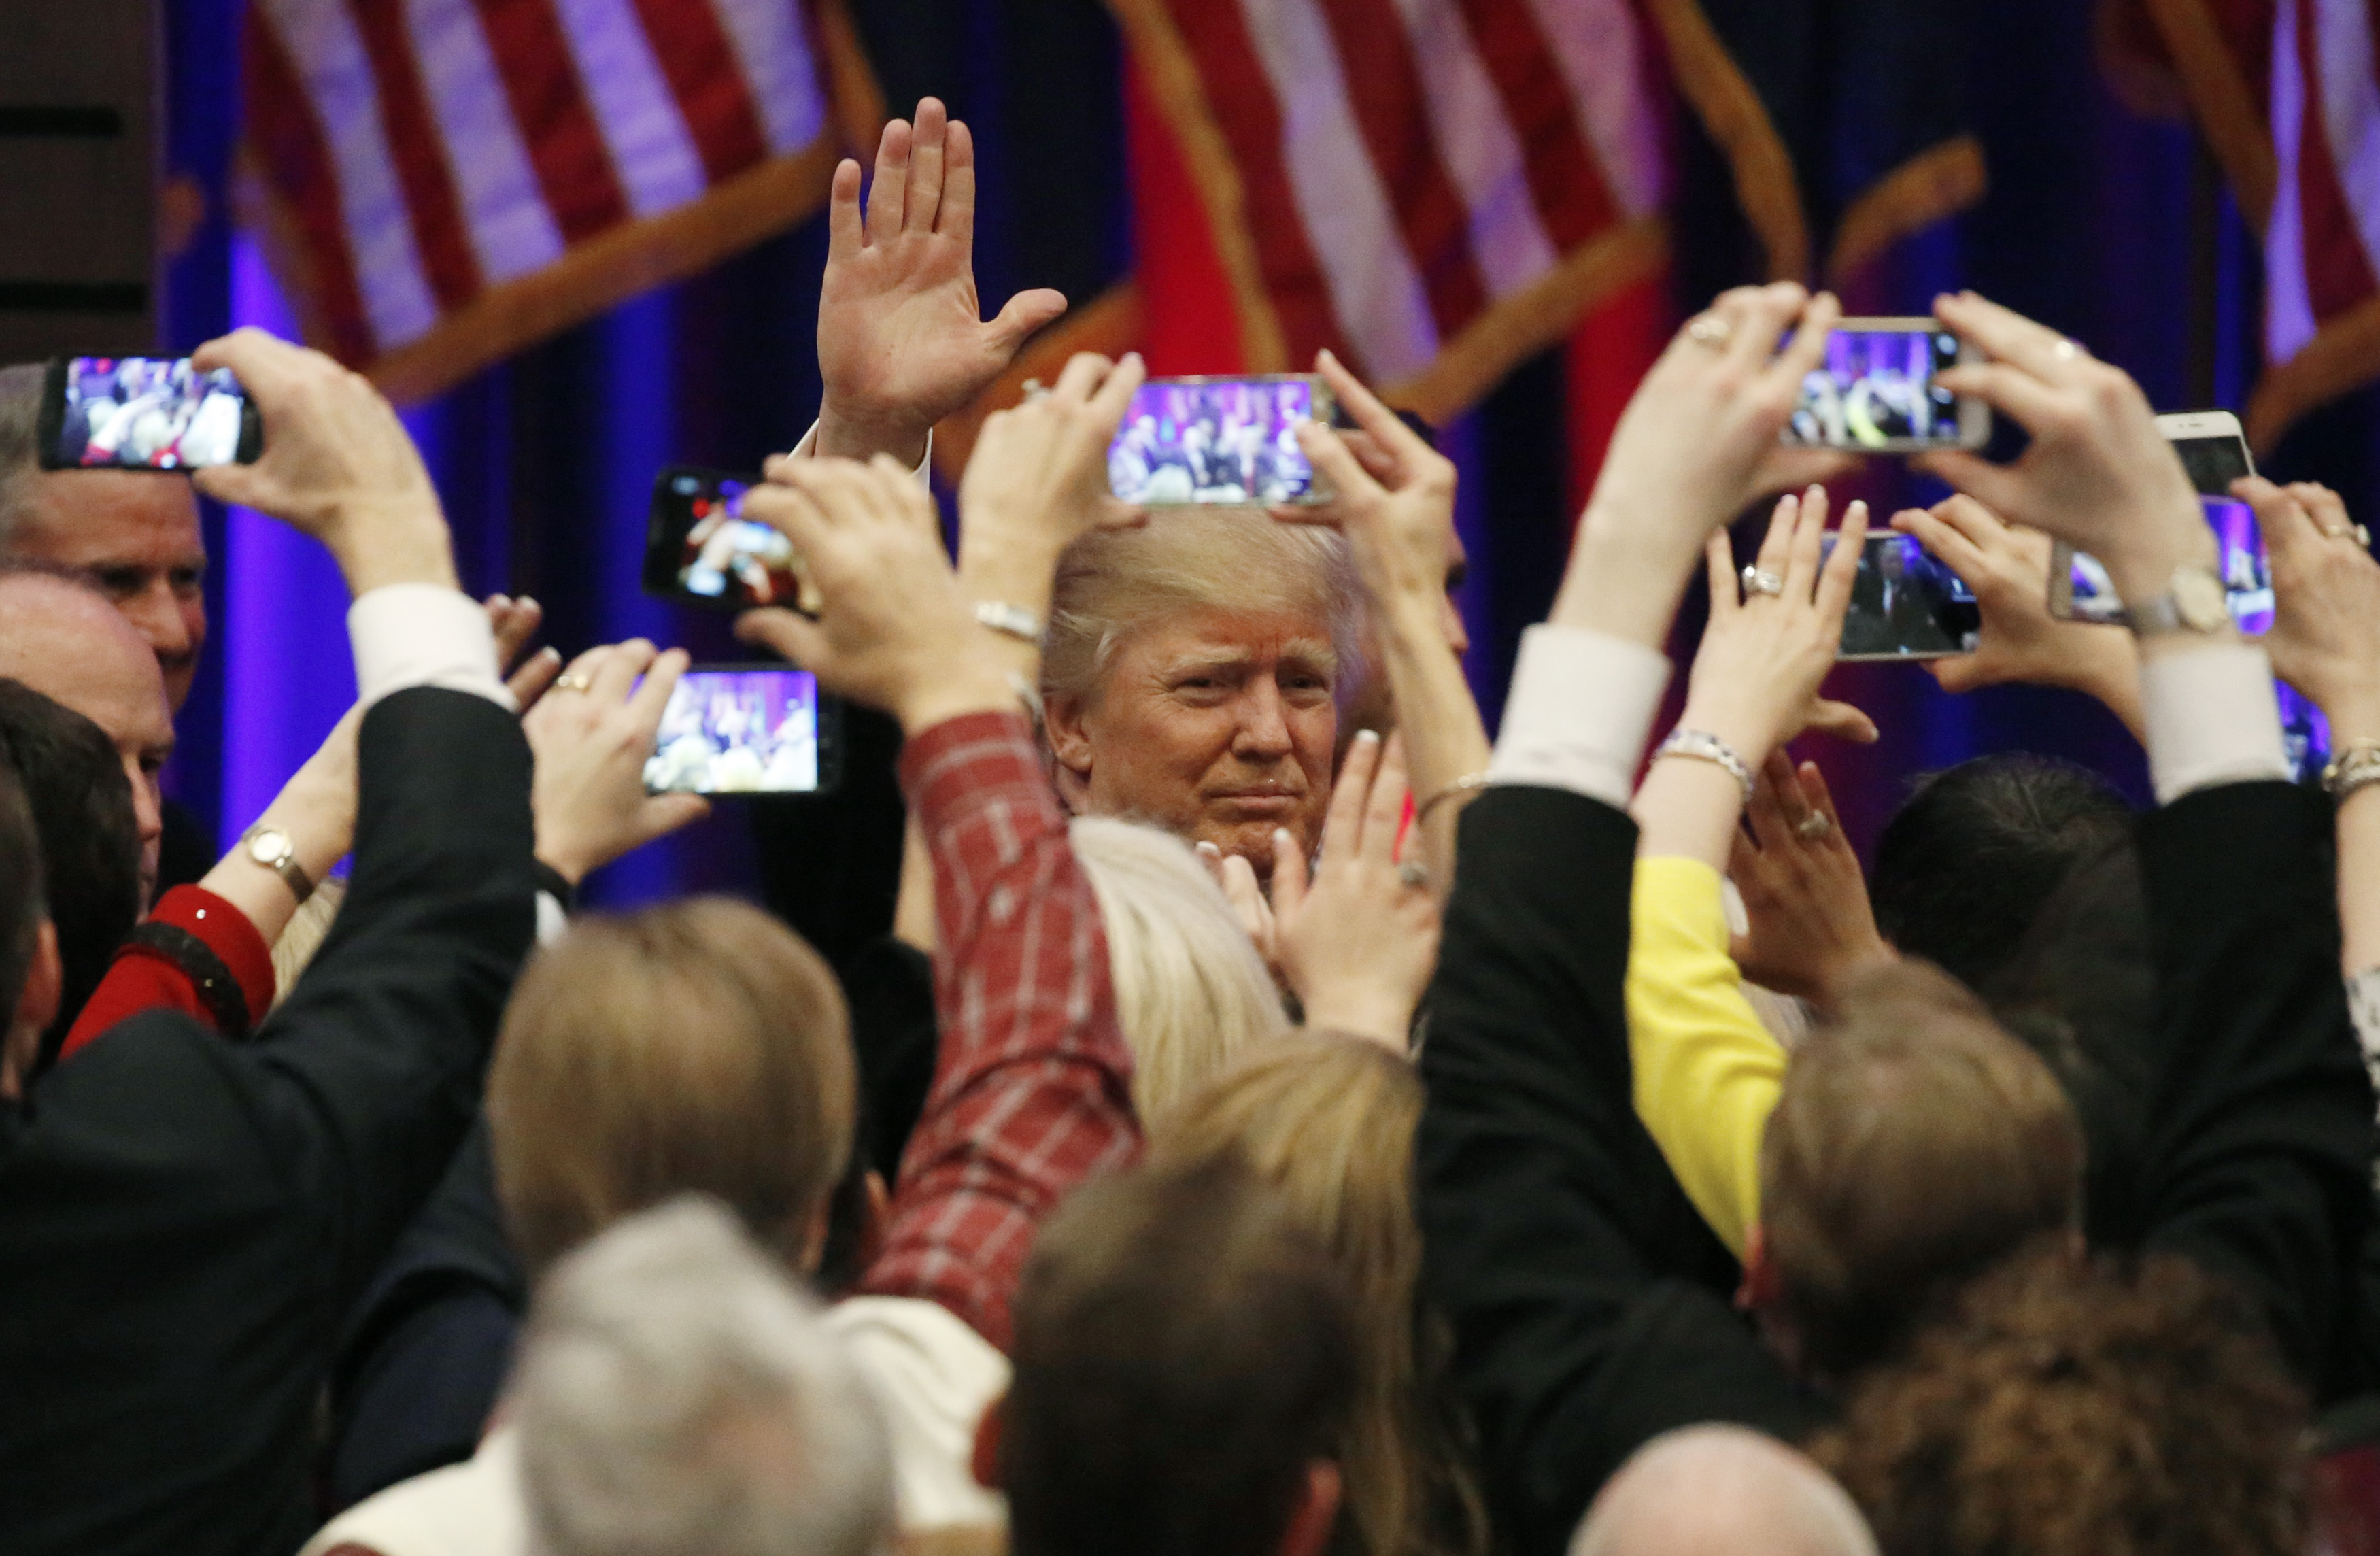 Republican U.S. presidential candidate Donald Trump greets supporters after speaking at his 2016 South Carolina presidential primary night victory rally in Spartanburg